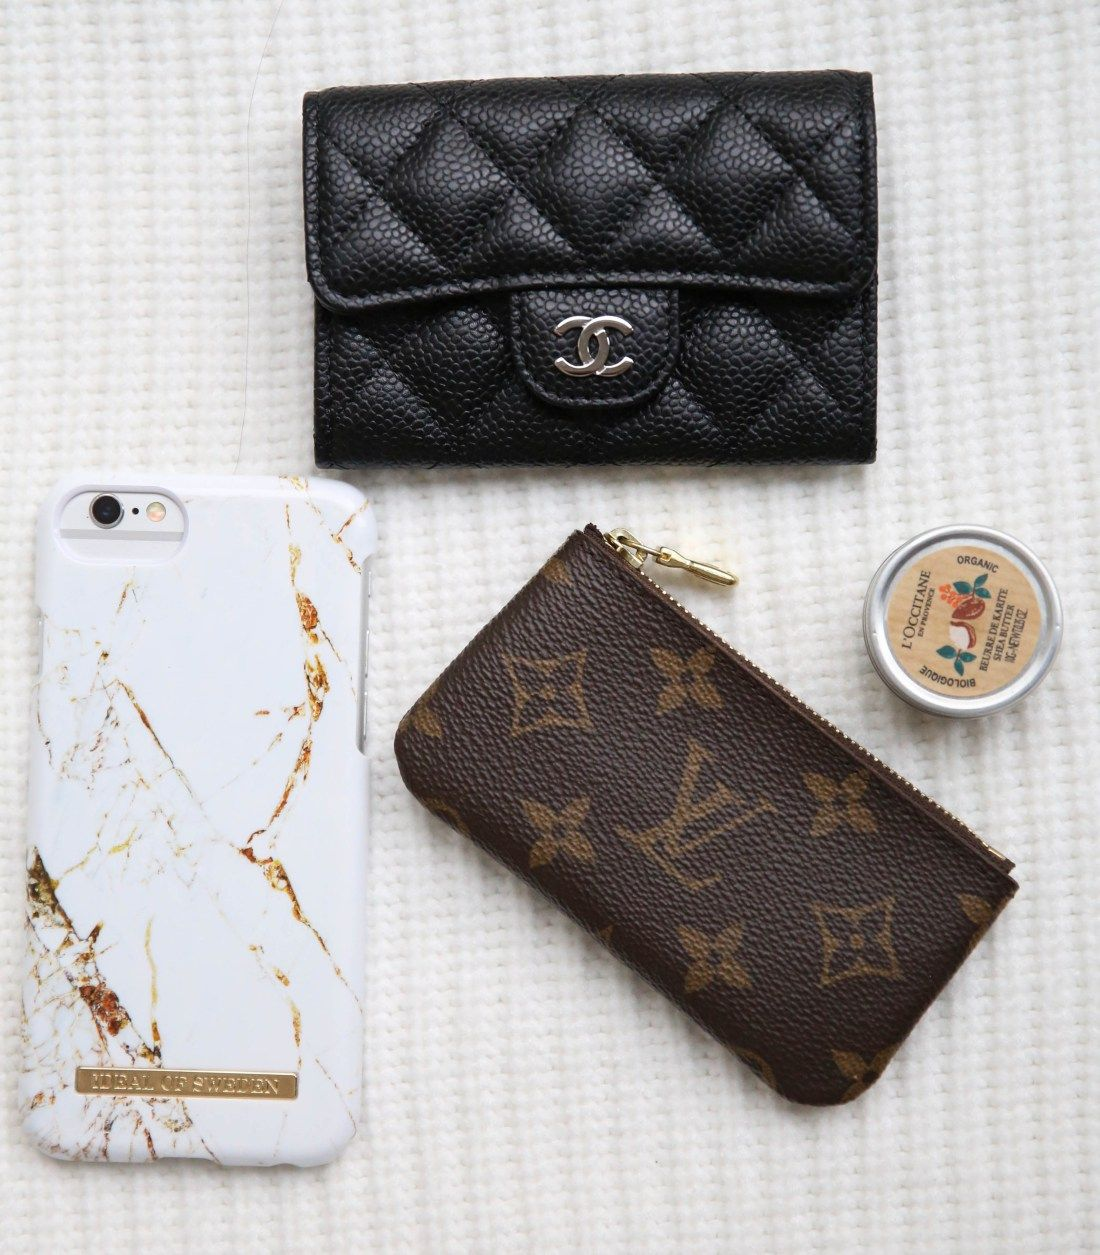 71cb3bdea9c Hermes Evelyne TPM Review. Chanel cardholder. Louis Vuitton key pouch. What  fits inside the Hermes Evelyne mini.